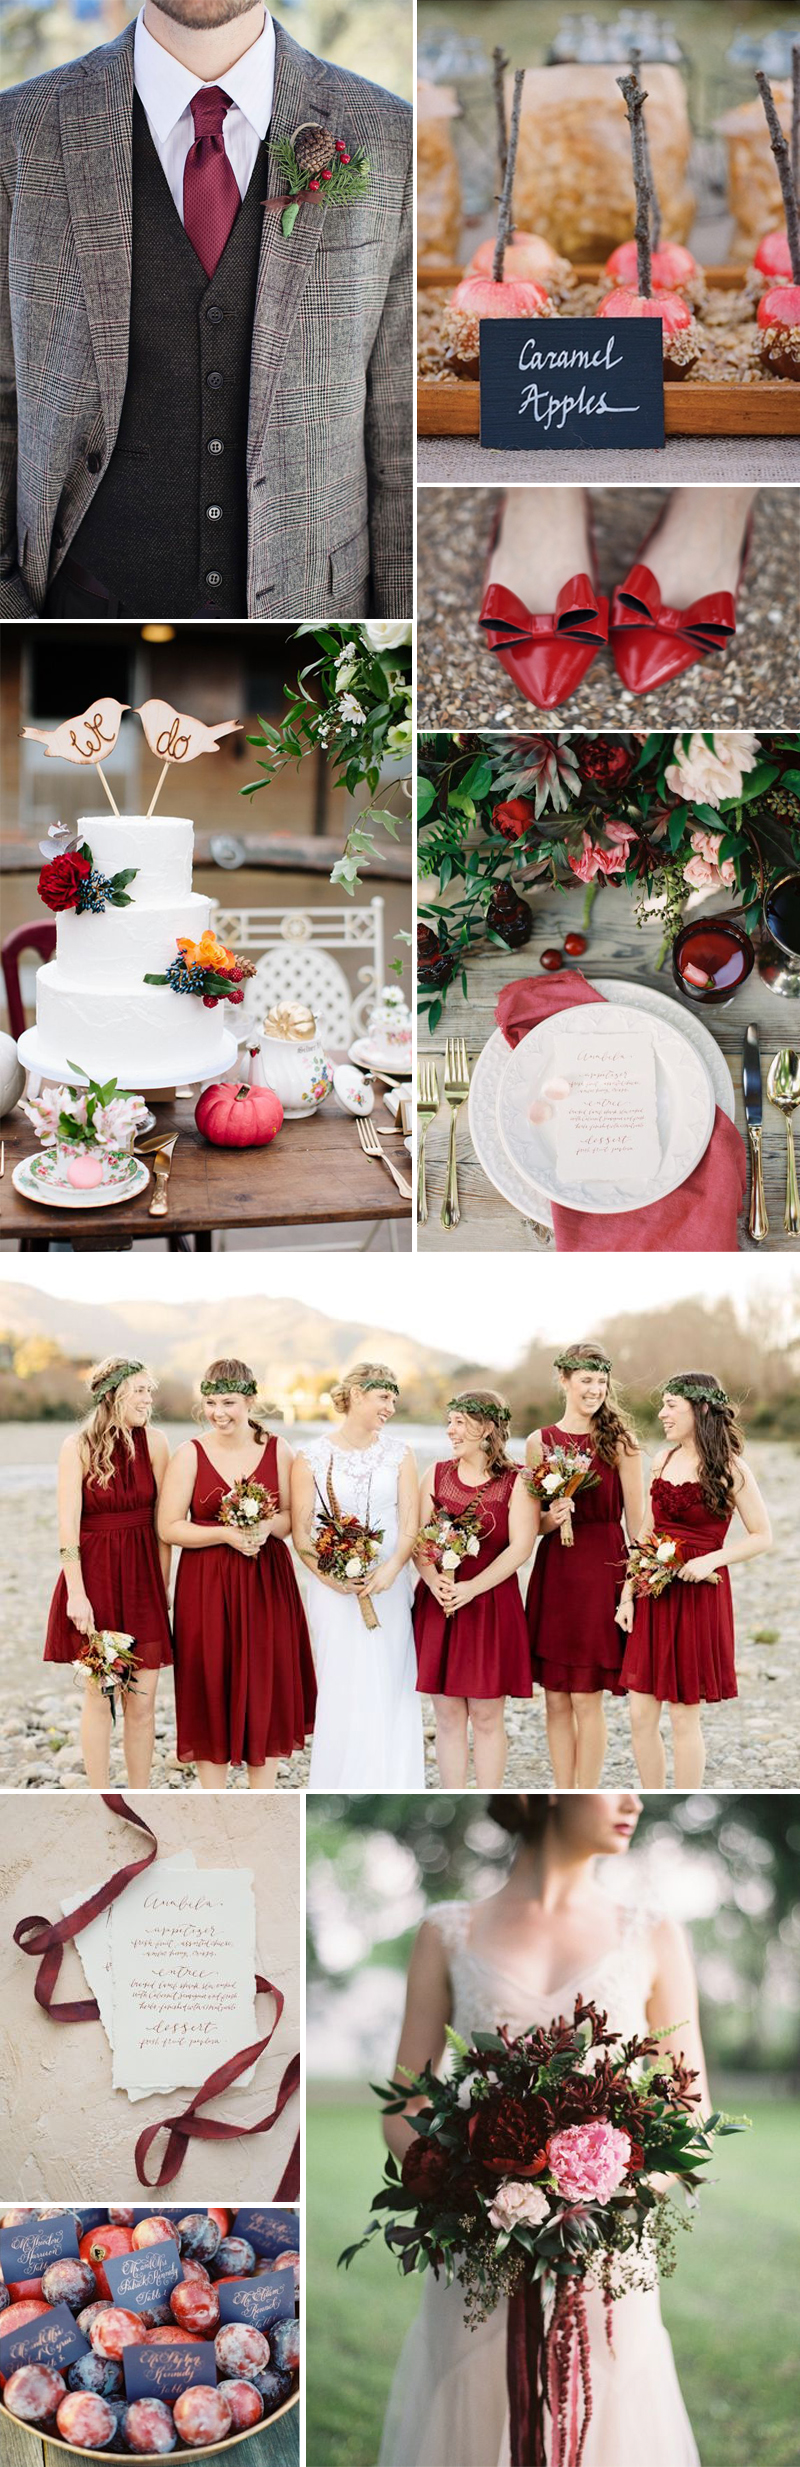 Mesmerizing Fall Wedding Ideas for 2018 that You Will Love!